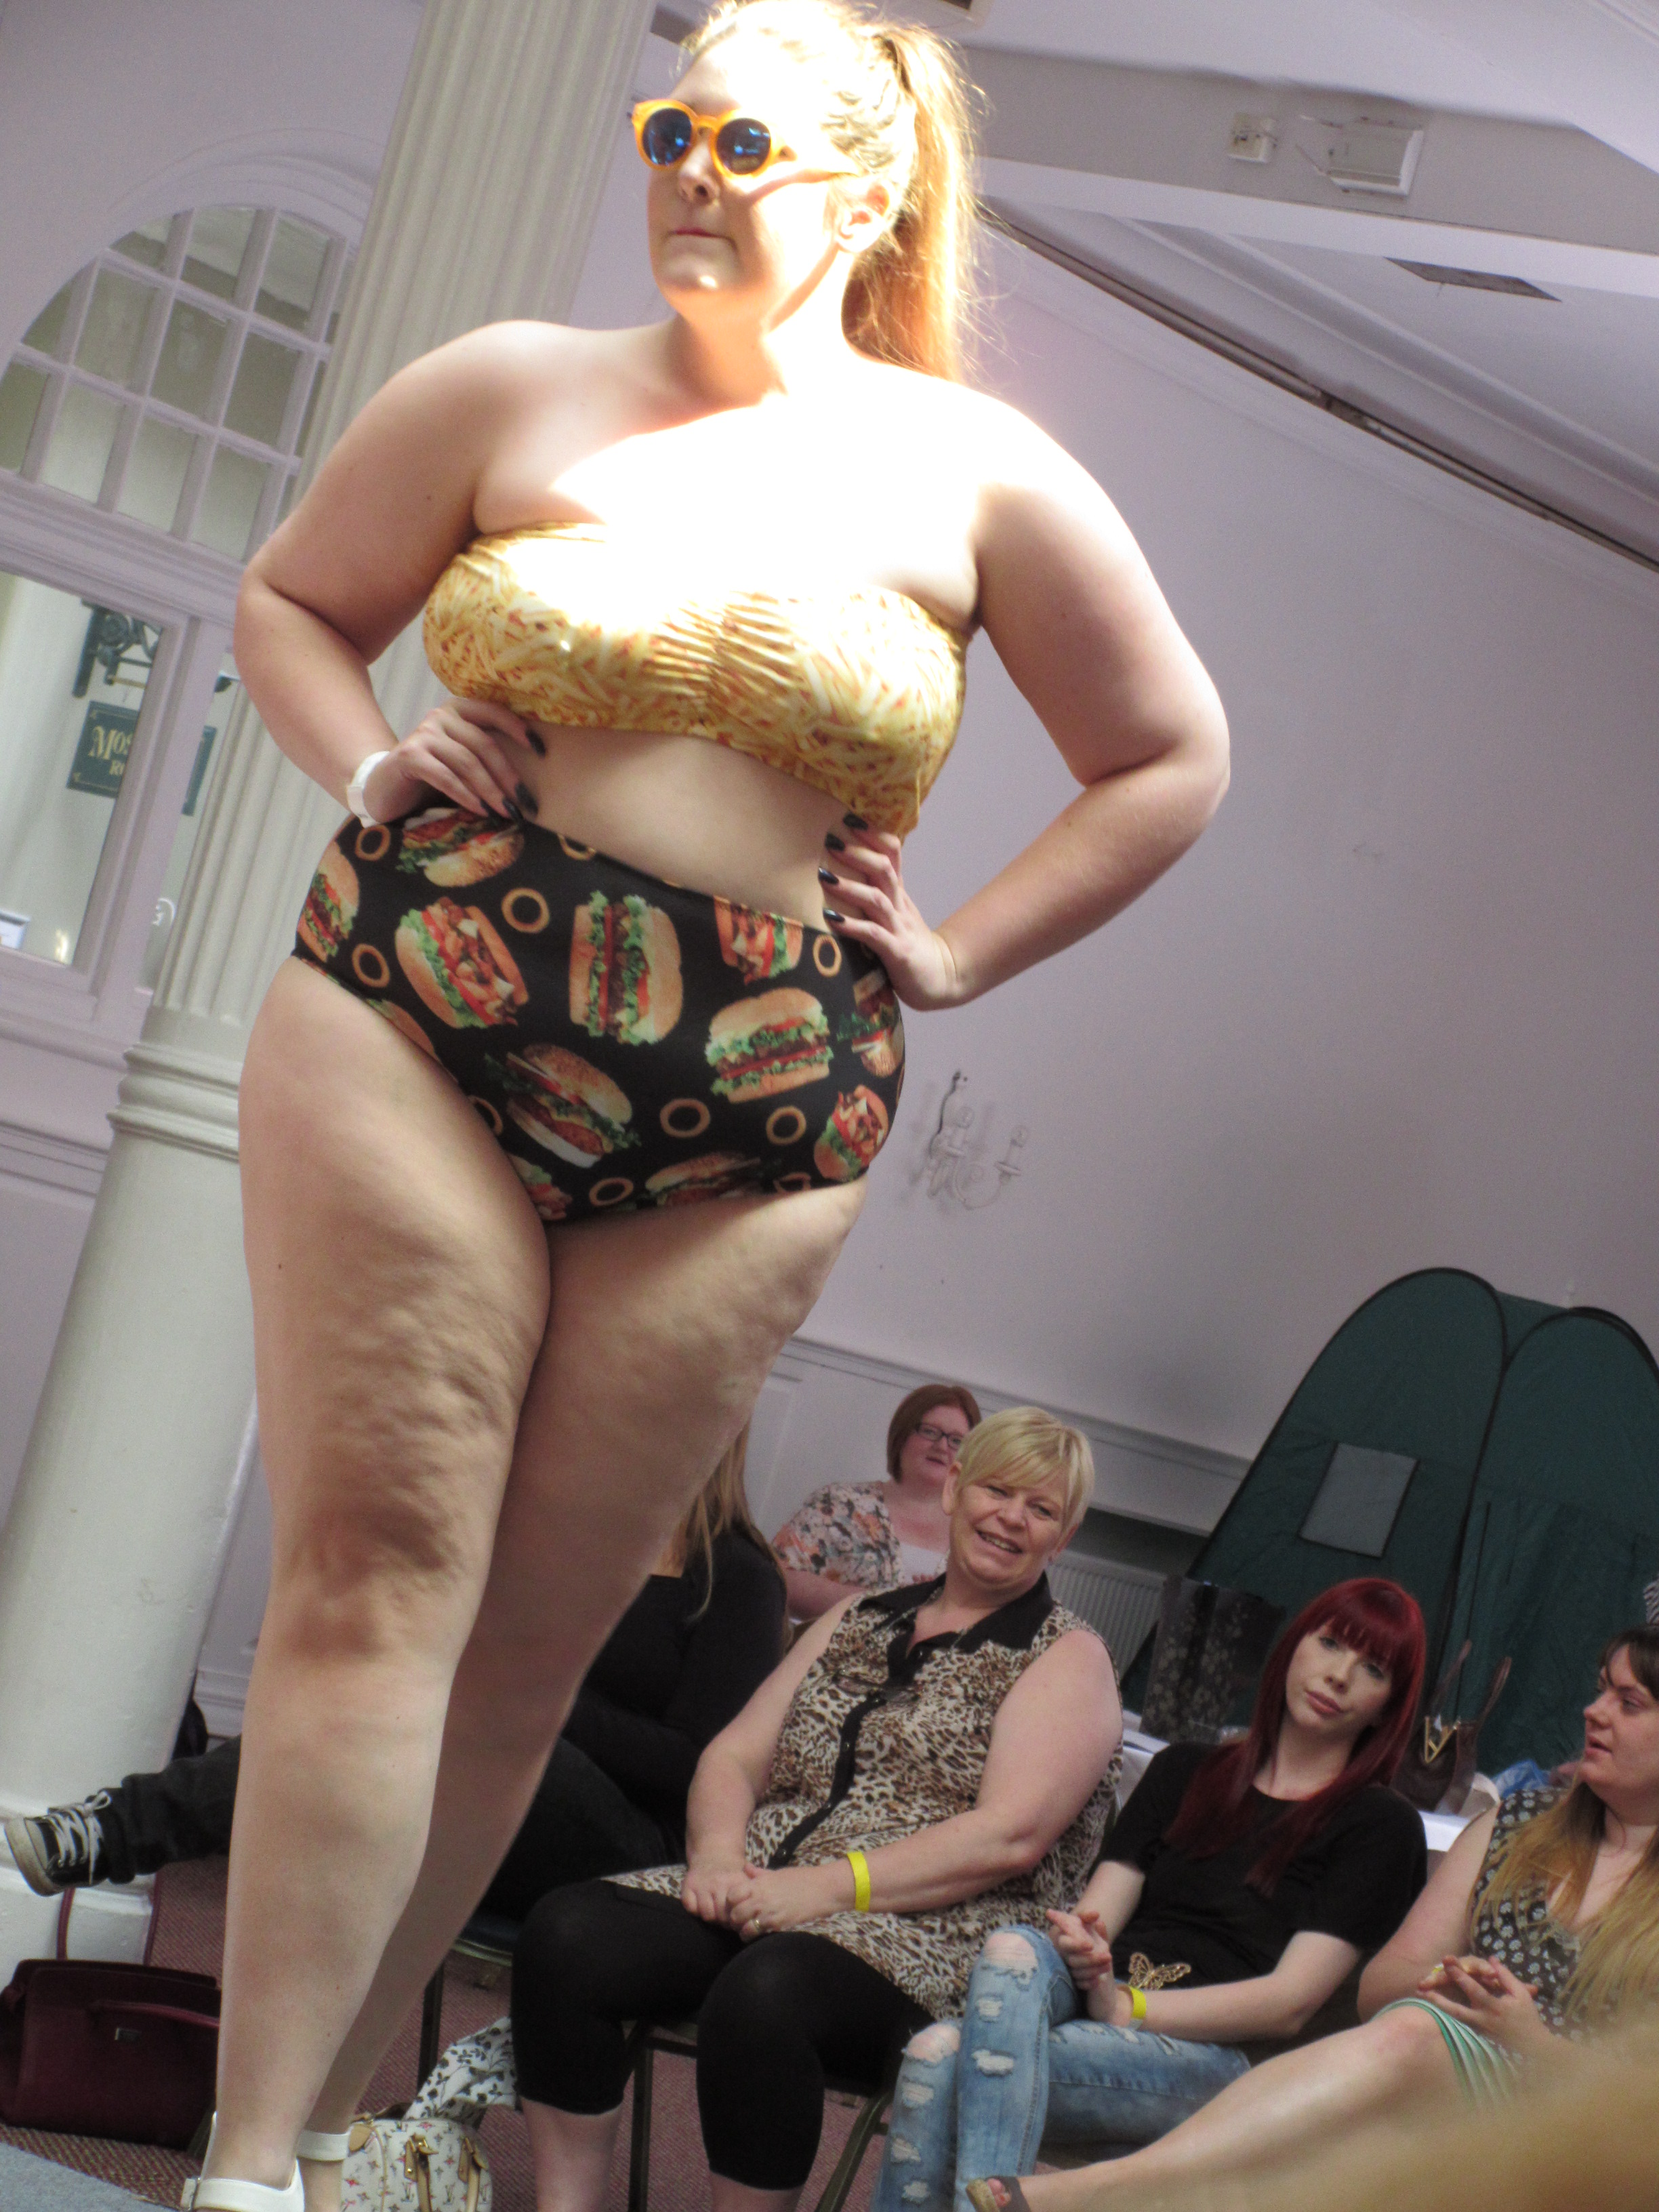 Chubby Cartwheels at on the lovely Sian - Winner of ModelXL 2015!